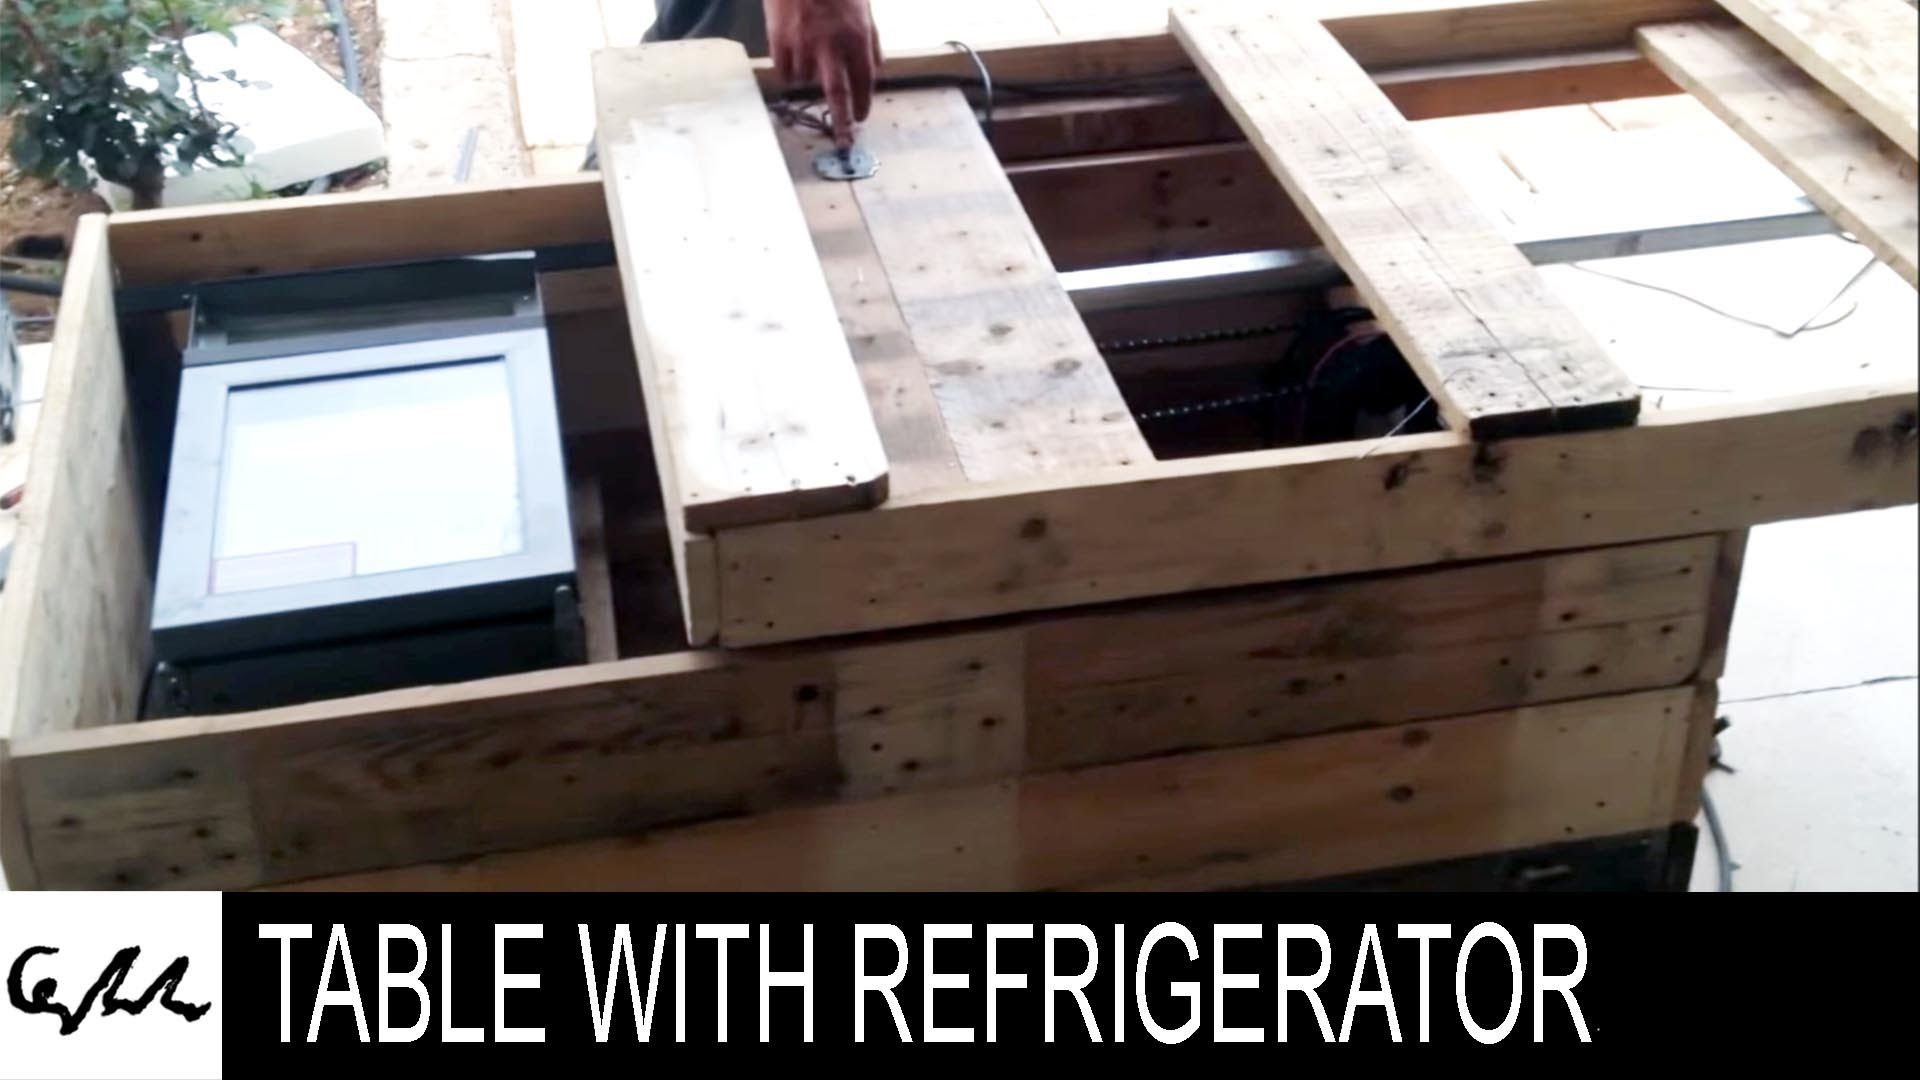 DIY Extreme coffee table with refrigerator made from